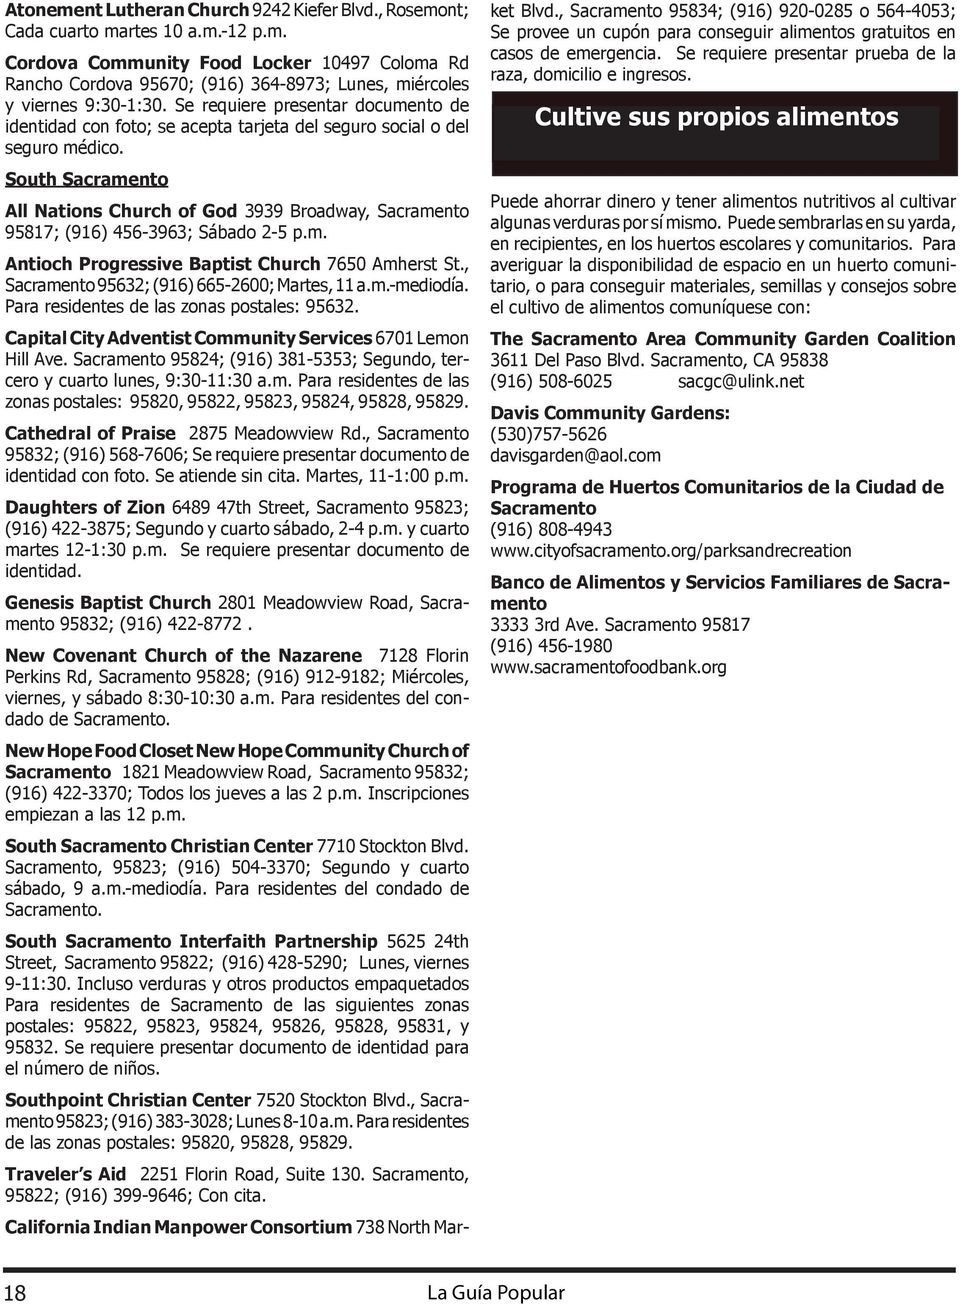 South Sacramento All Nations Church of God 3939 Broadway, Sacramento 95817; (916) 456-3963; Sábado 2-5 p.m. Antioch Progressive Baptist Church 7650 Amherst St.